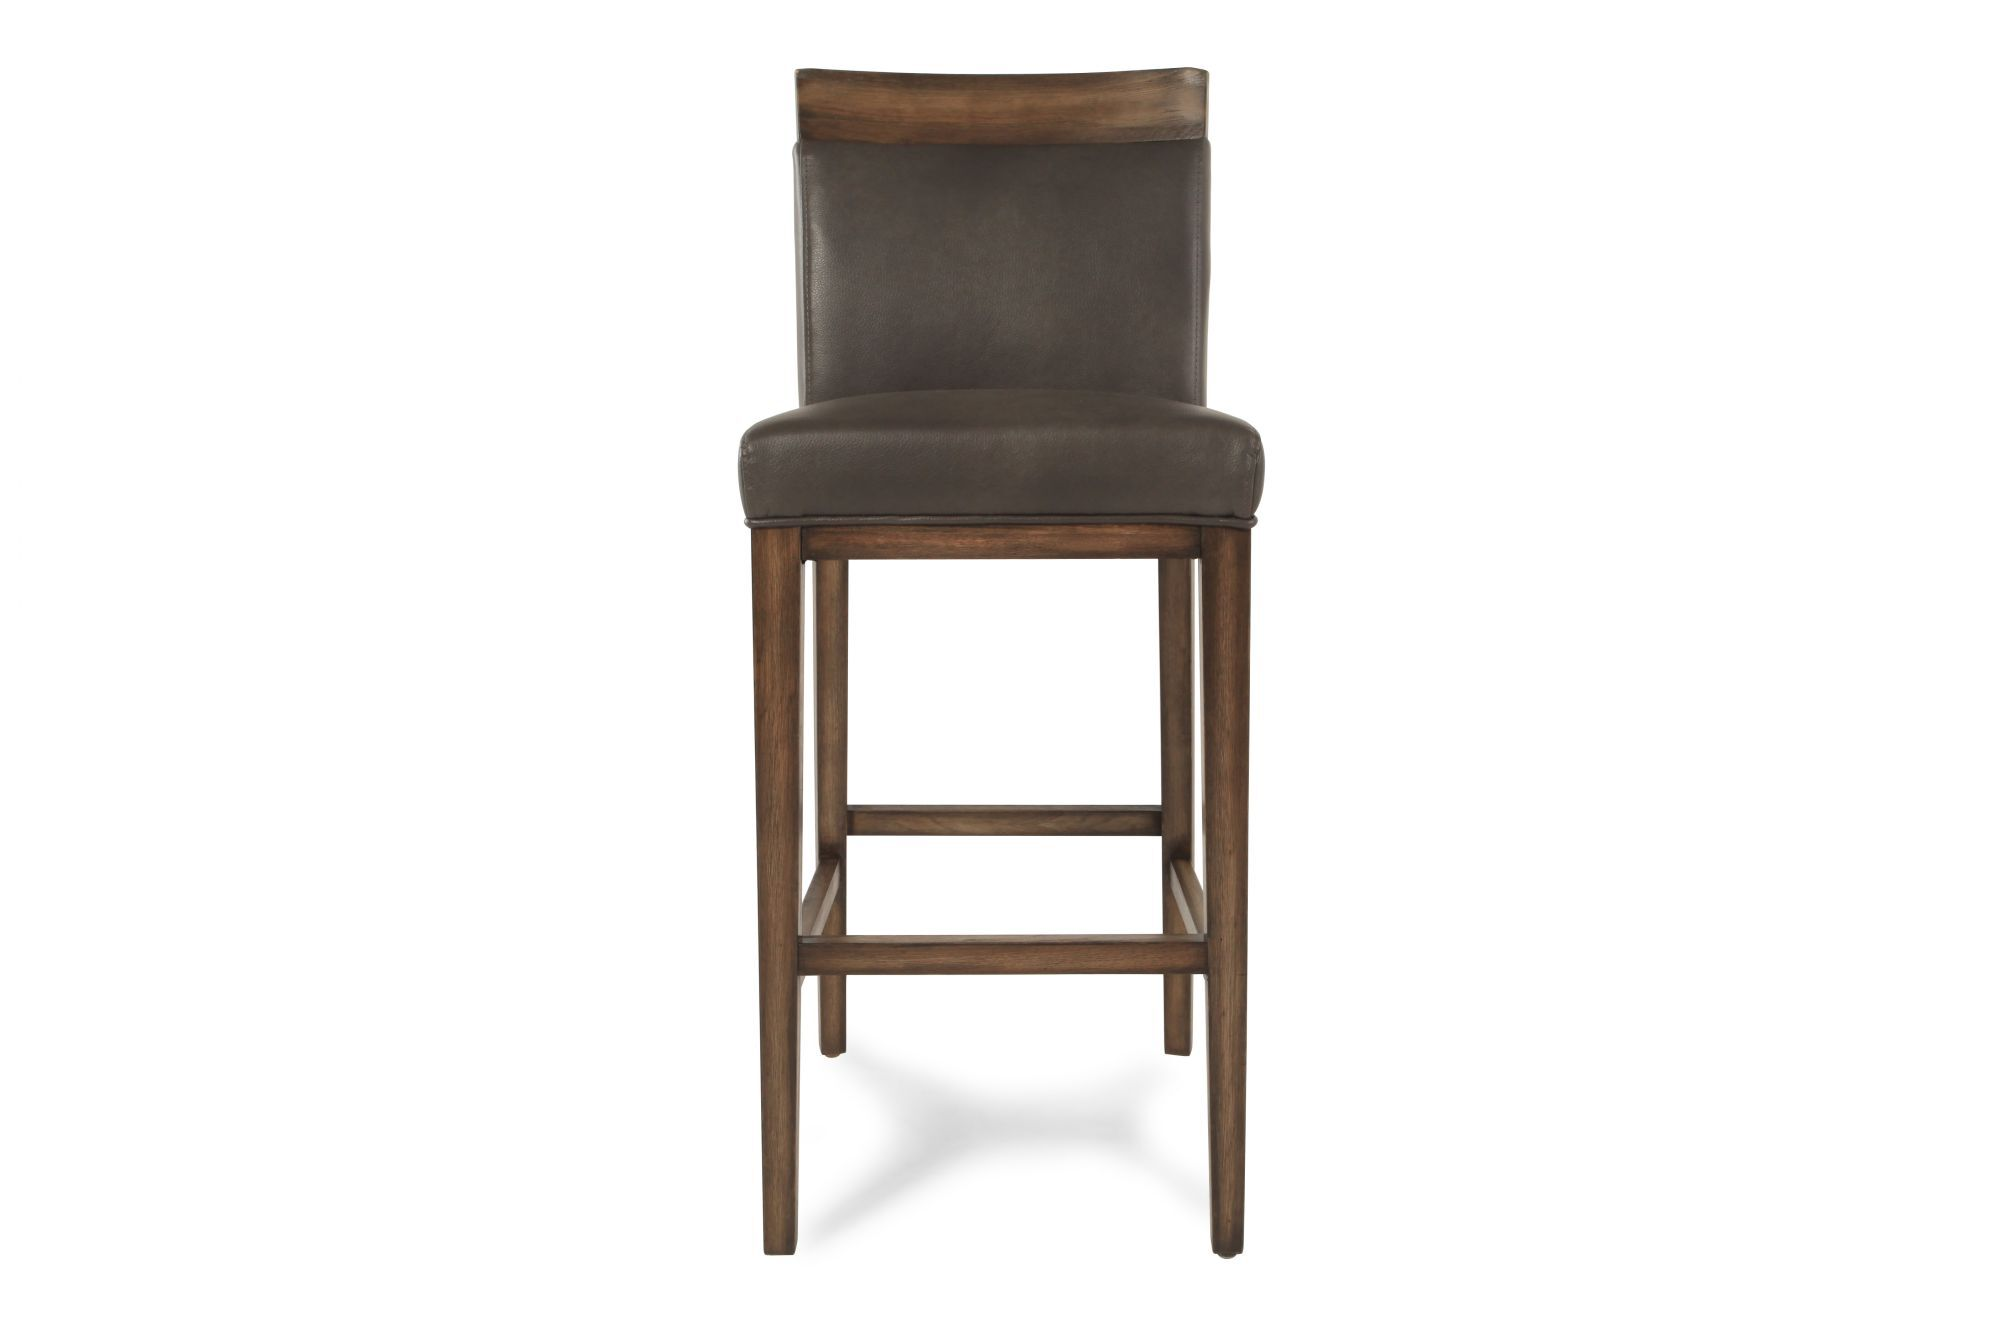 Contemporary Breakfast Bar Stools Leather Contemporary Bar Stool In Gray Mathis Brothers